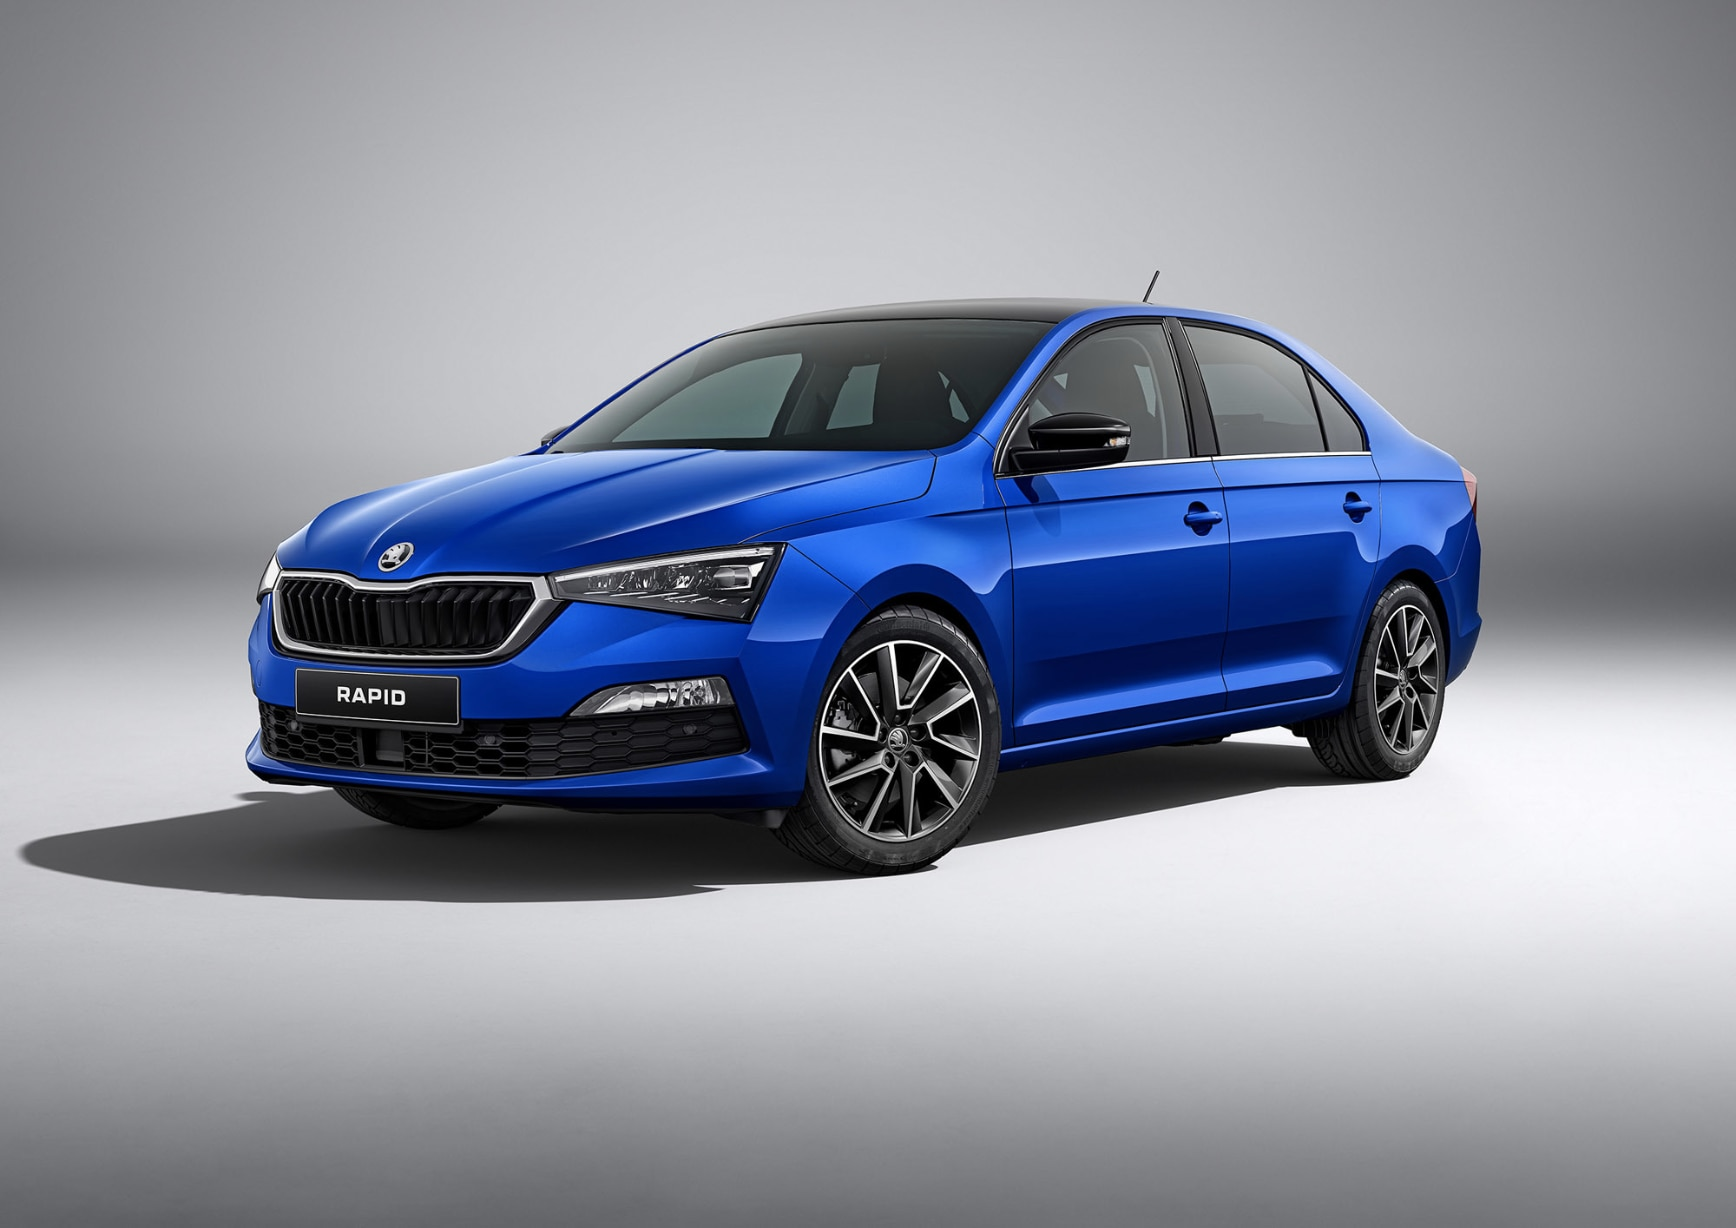 The new Skoda Rapid will come with two engine variants - a 1.6-litre petrol and a 1.4-litre turbocharged petrol engine